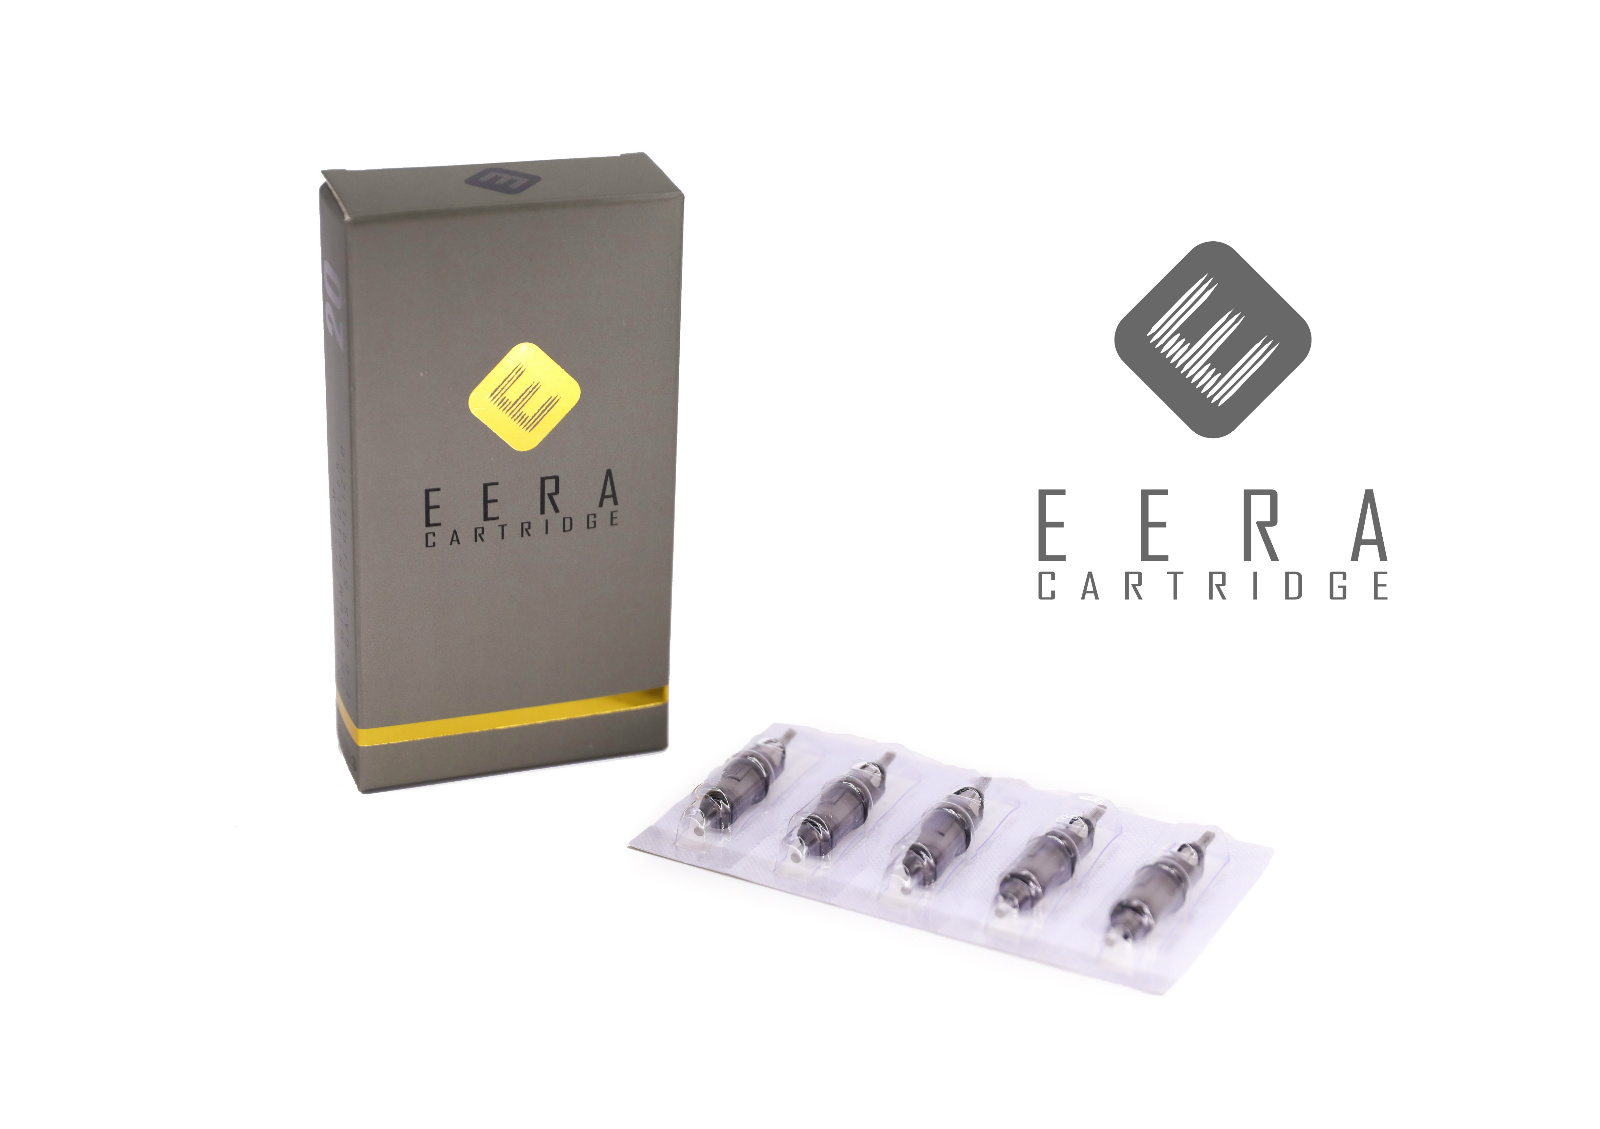 EERA Premium Cartridge Needles